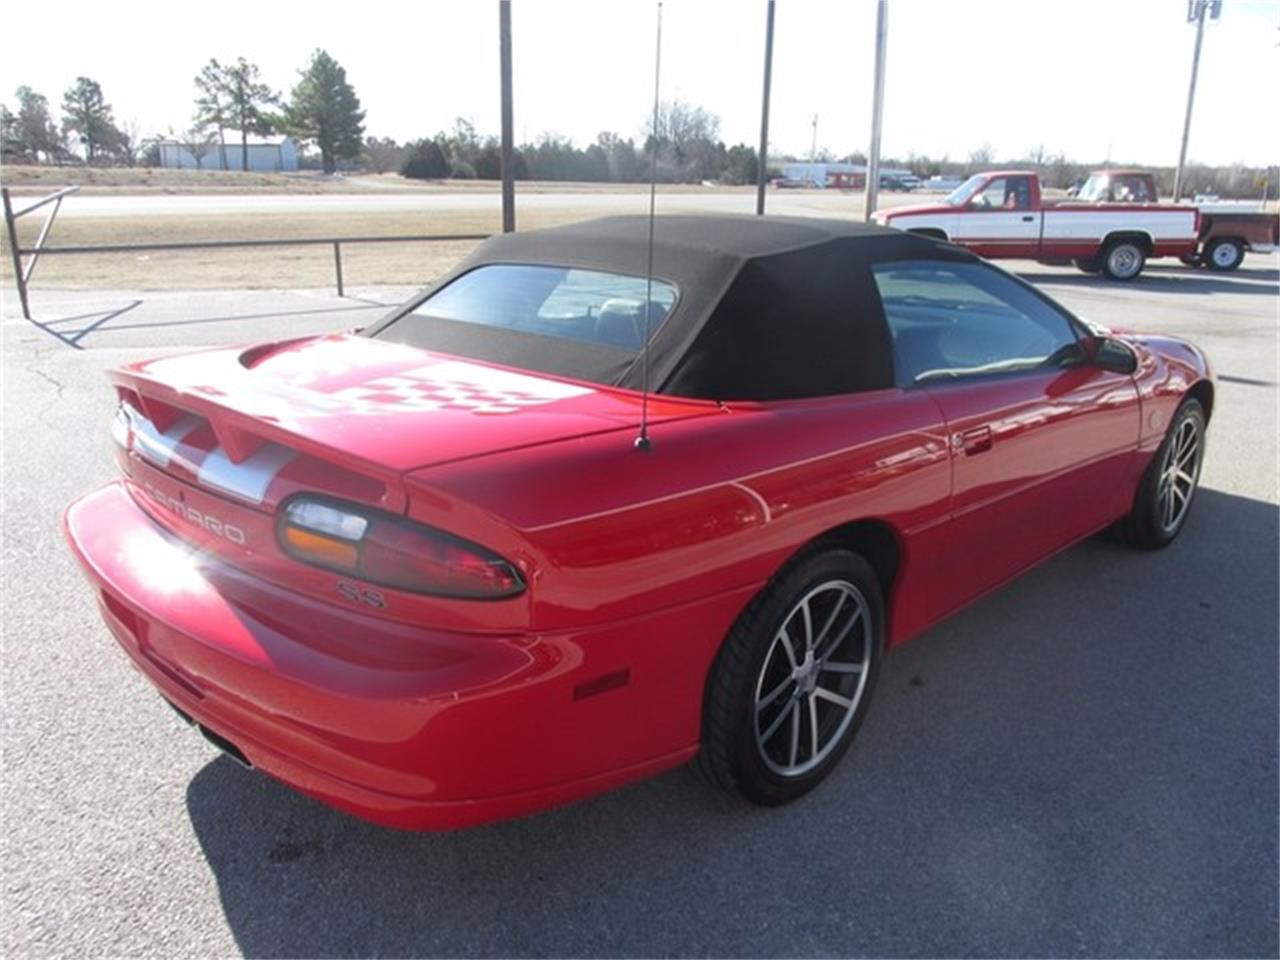 Large Picture of 2002 Camaro located in Blanchard Oklahoma - $29,000.00 - DA4T